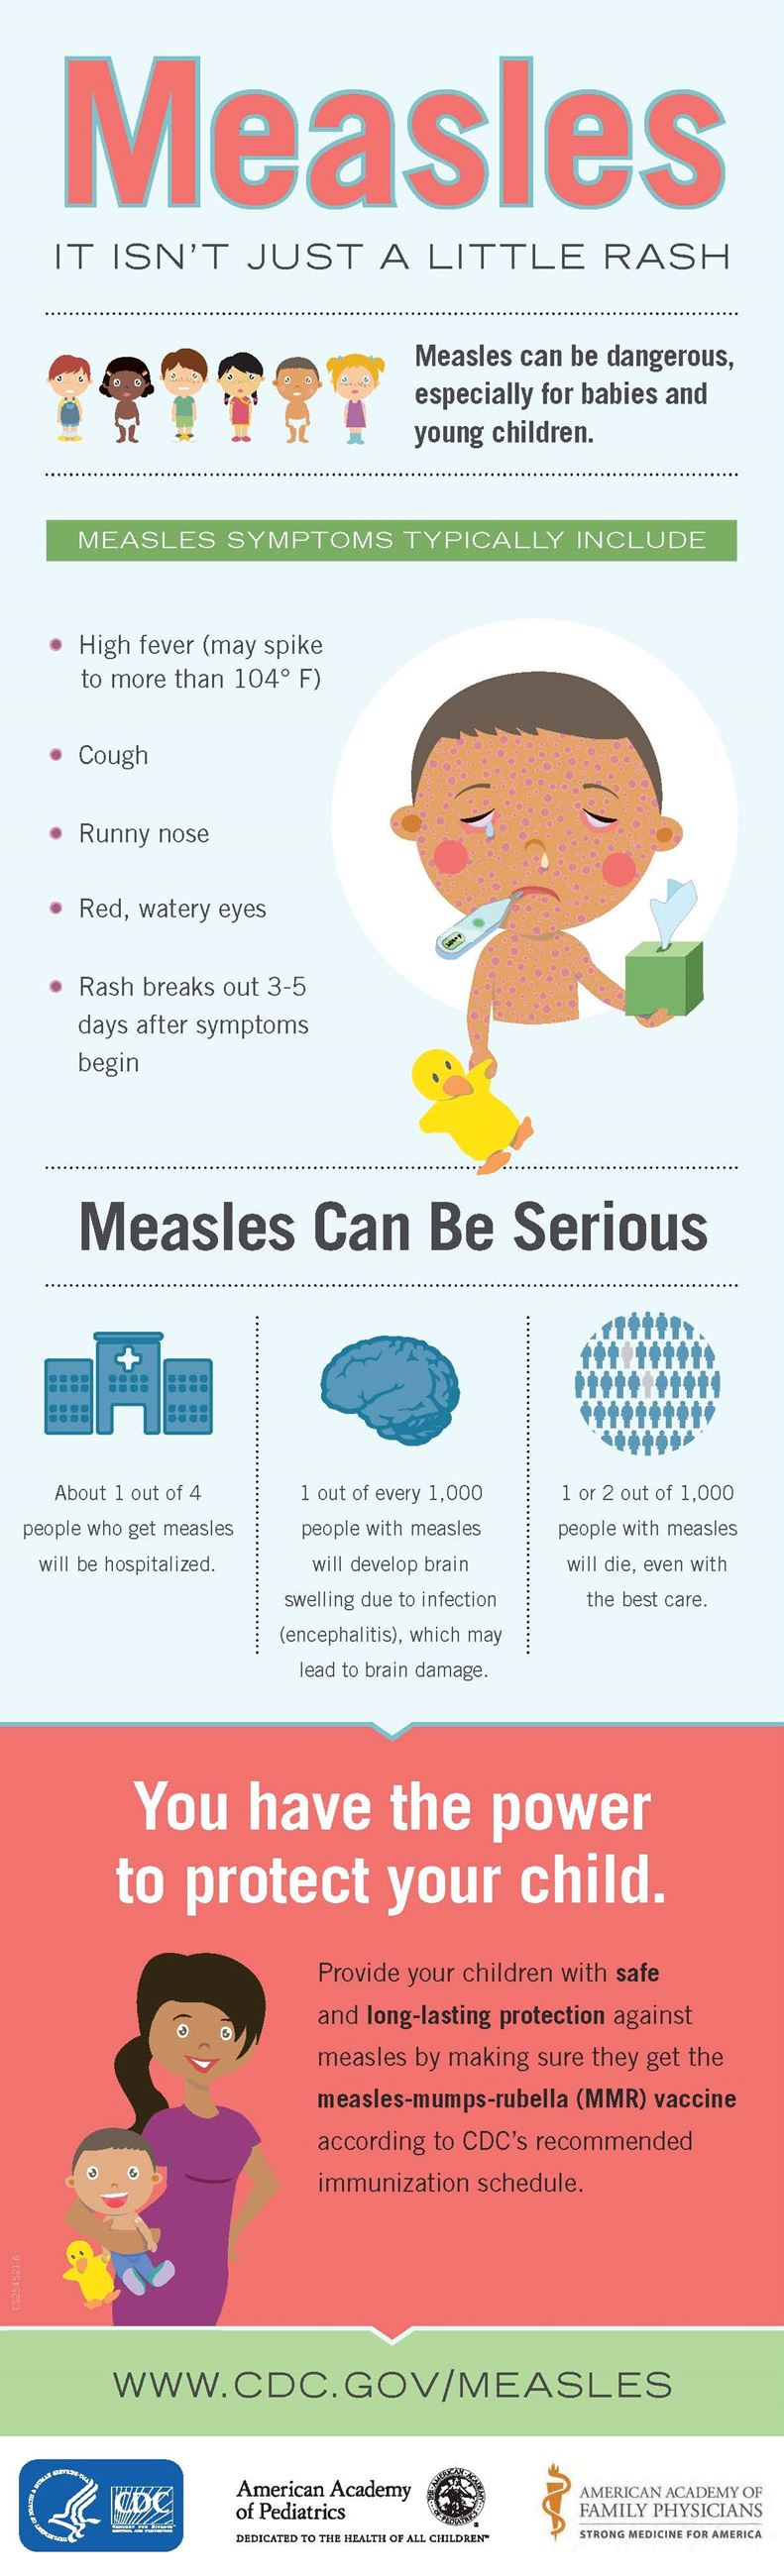 Measles It Isn't Just a Little Rash